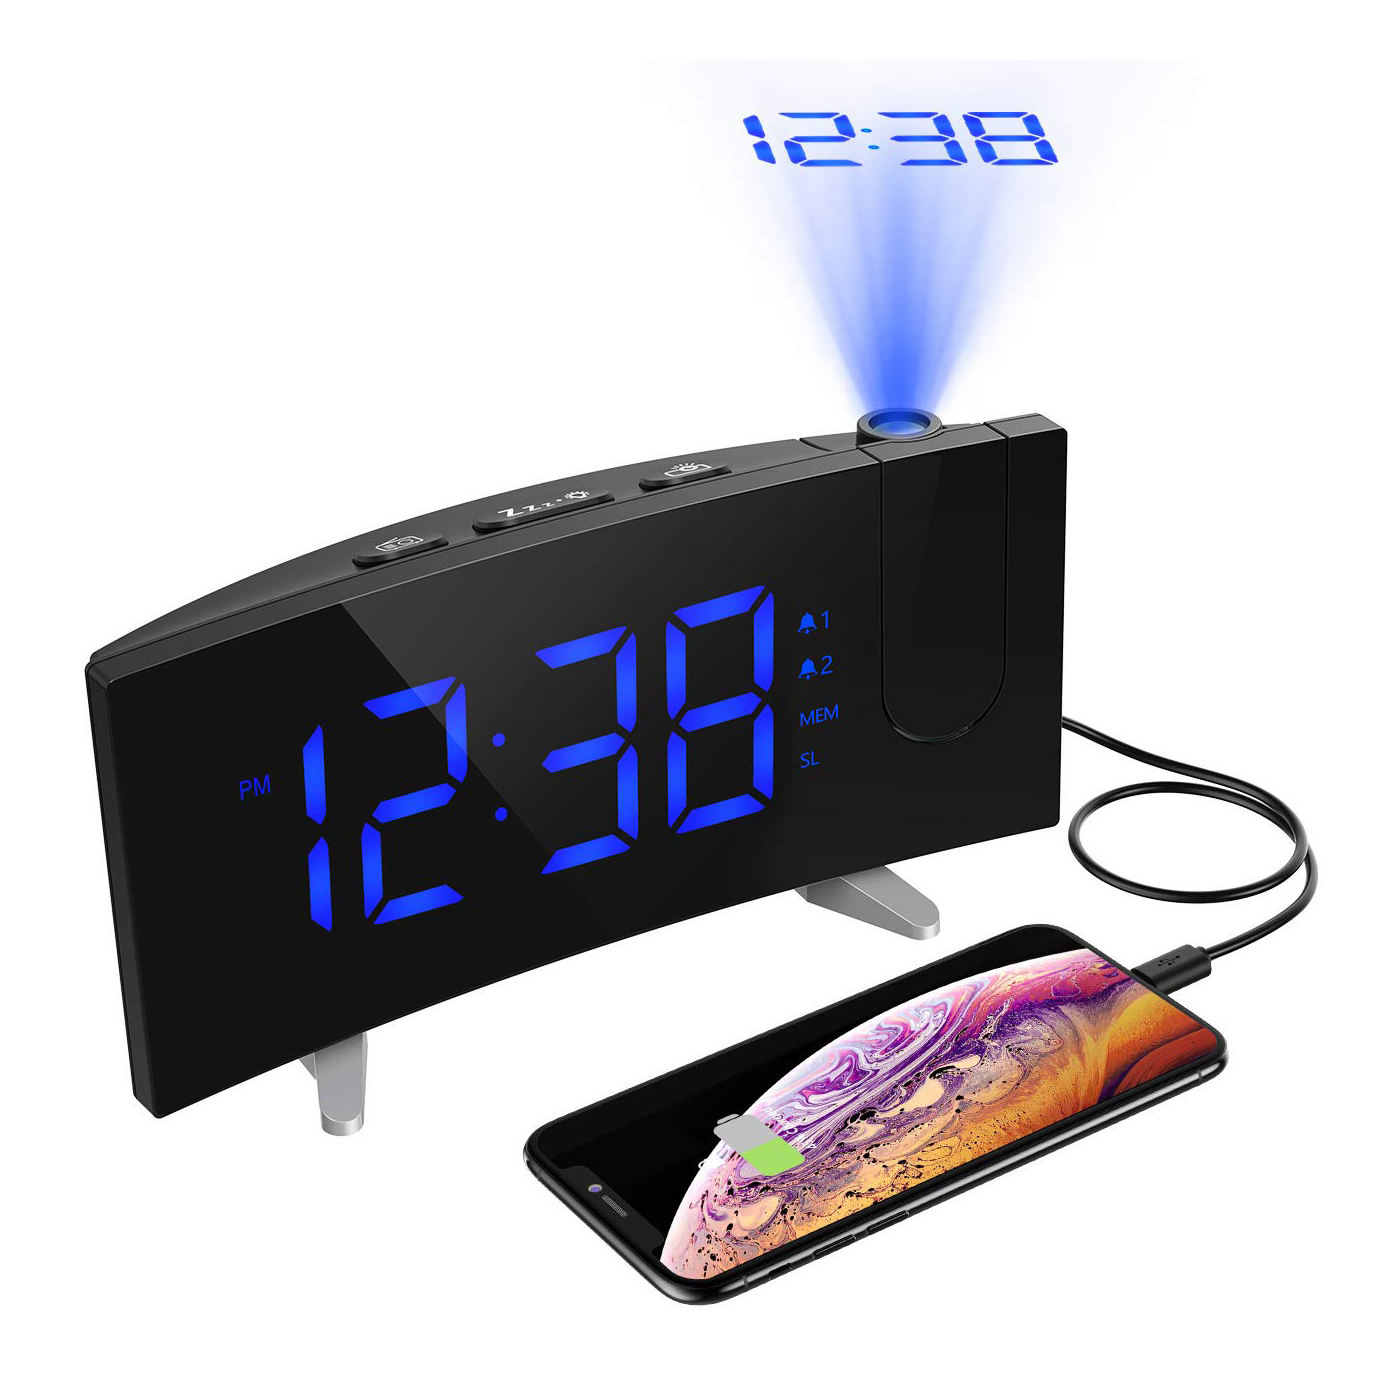 Amazon Top Seller 2019 Digital Sunrise Alarm Clock with Radio and Projector